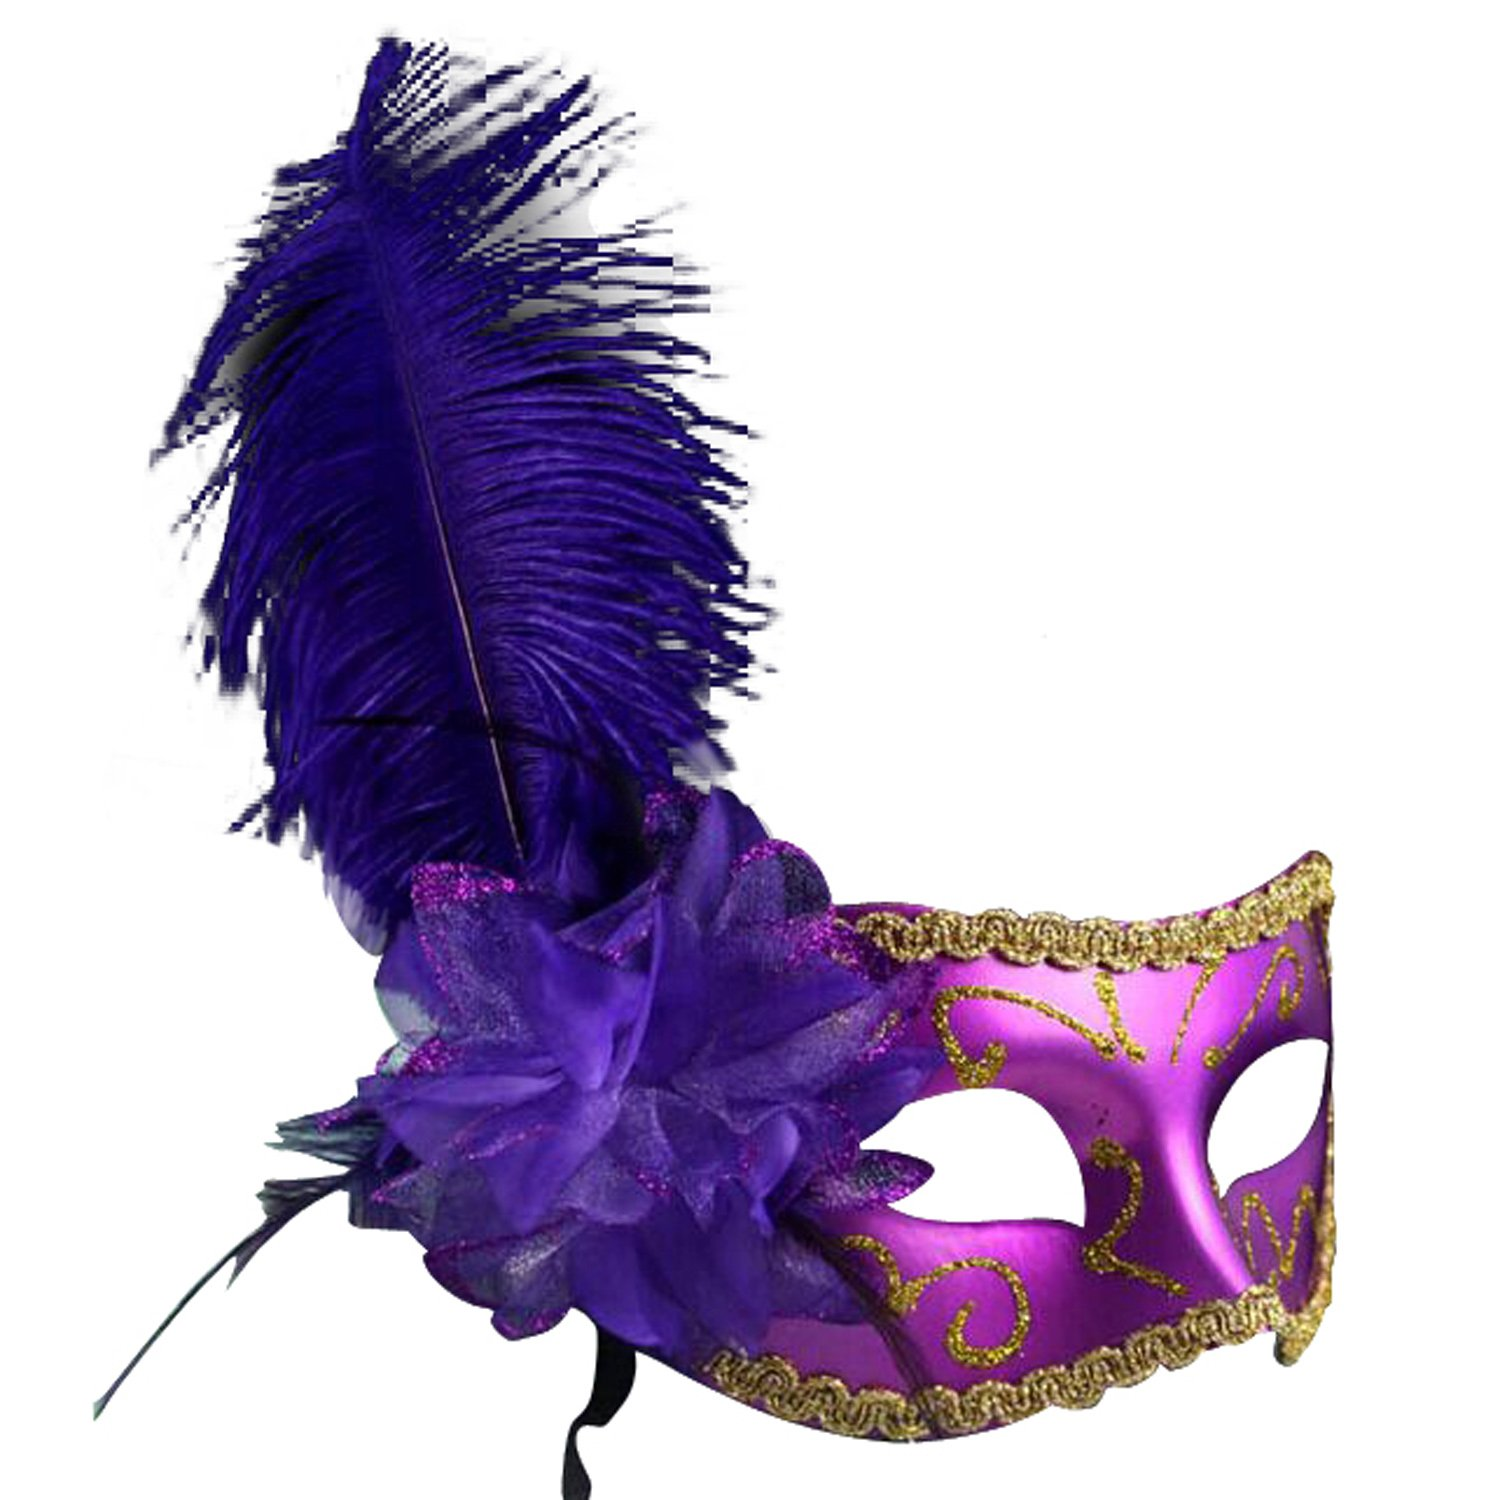 AWBJN DNWVA Women's Eye Mask for Masquerade Party with Feather Flower Prom Ball Halloween